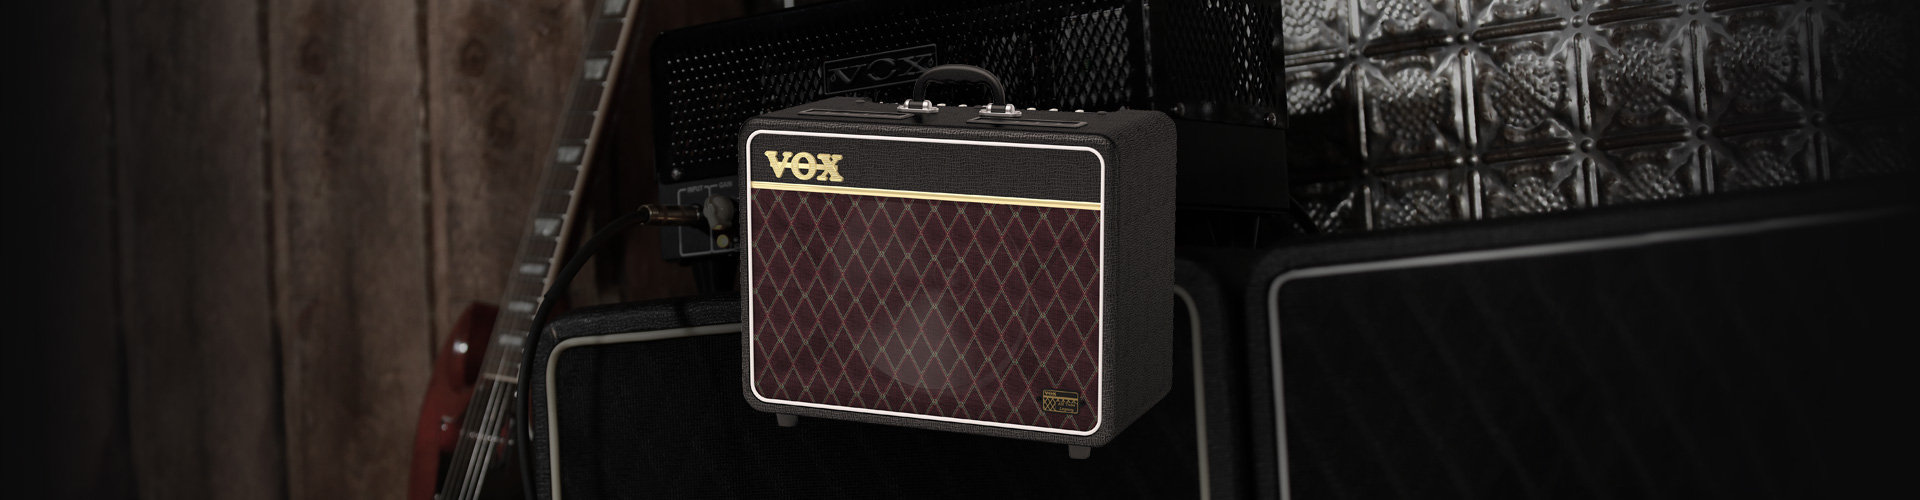 VOX Night Train NT15C1-CL 全电子管吉他音箱 15W